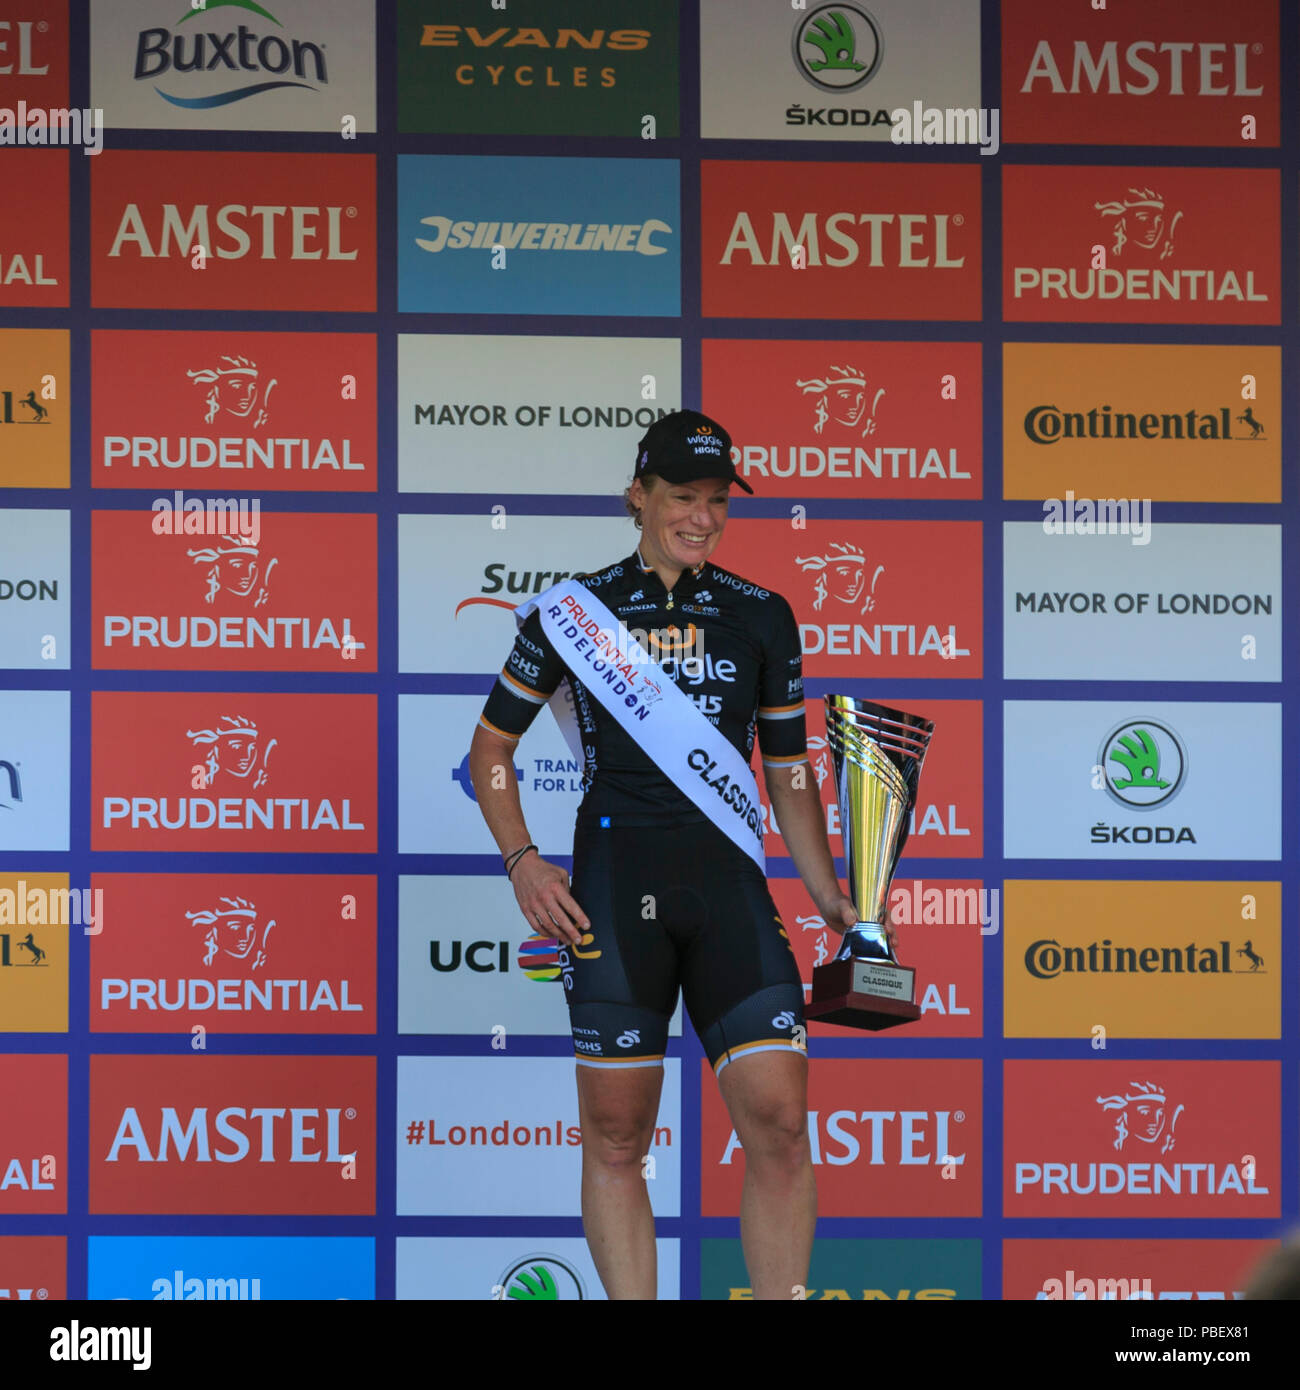 London, UK, 28 July 2018. Prudential RideLondon Classique. Kirsten Wild (Wiggle-High5, NED) stands on the podium after winning the RideLondon Classique - a 65km race around a 5.4km circuit finishing on The Mall. Stock Photo